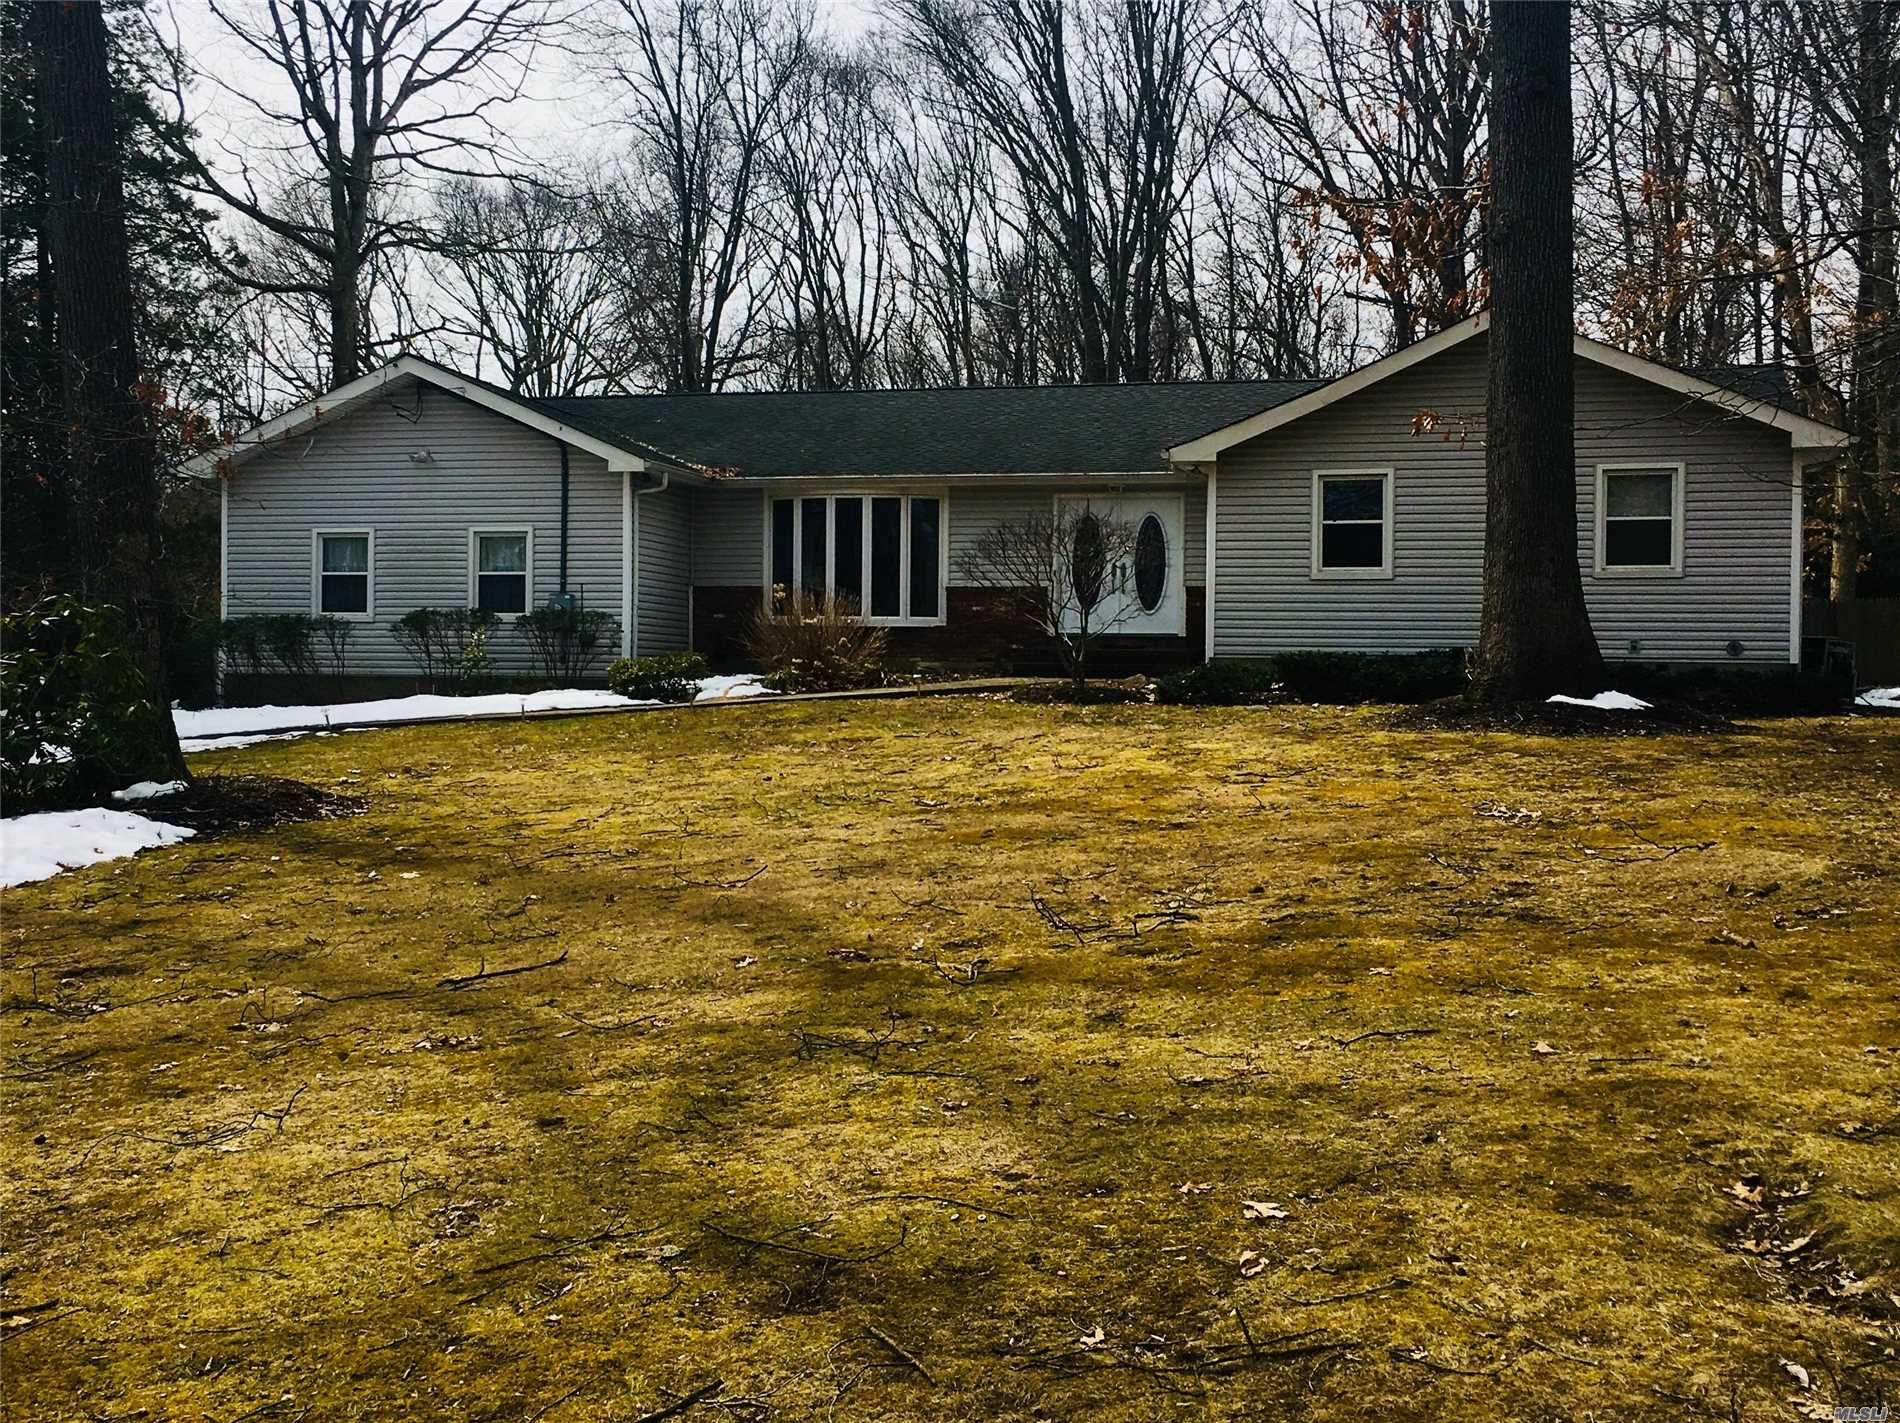 Don't Miss This 3 Bedroom, 3 Bath Ranch Home Located On A Quiet Tree Lined Cul-De-Sac. Lots Of Windows To Enjoy The 1 Acre Park- Like Private Property. Master Suite With Bath, Oversized Den With Fireplace, Perfect For Entertaining And Family Fun...